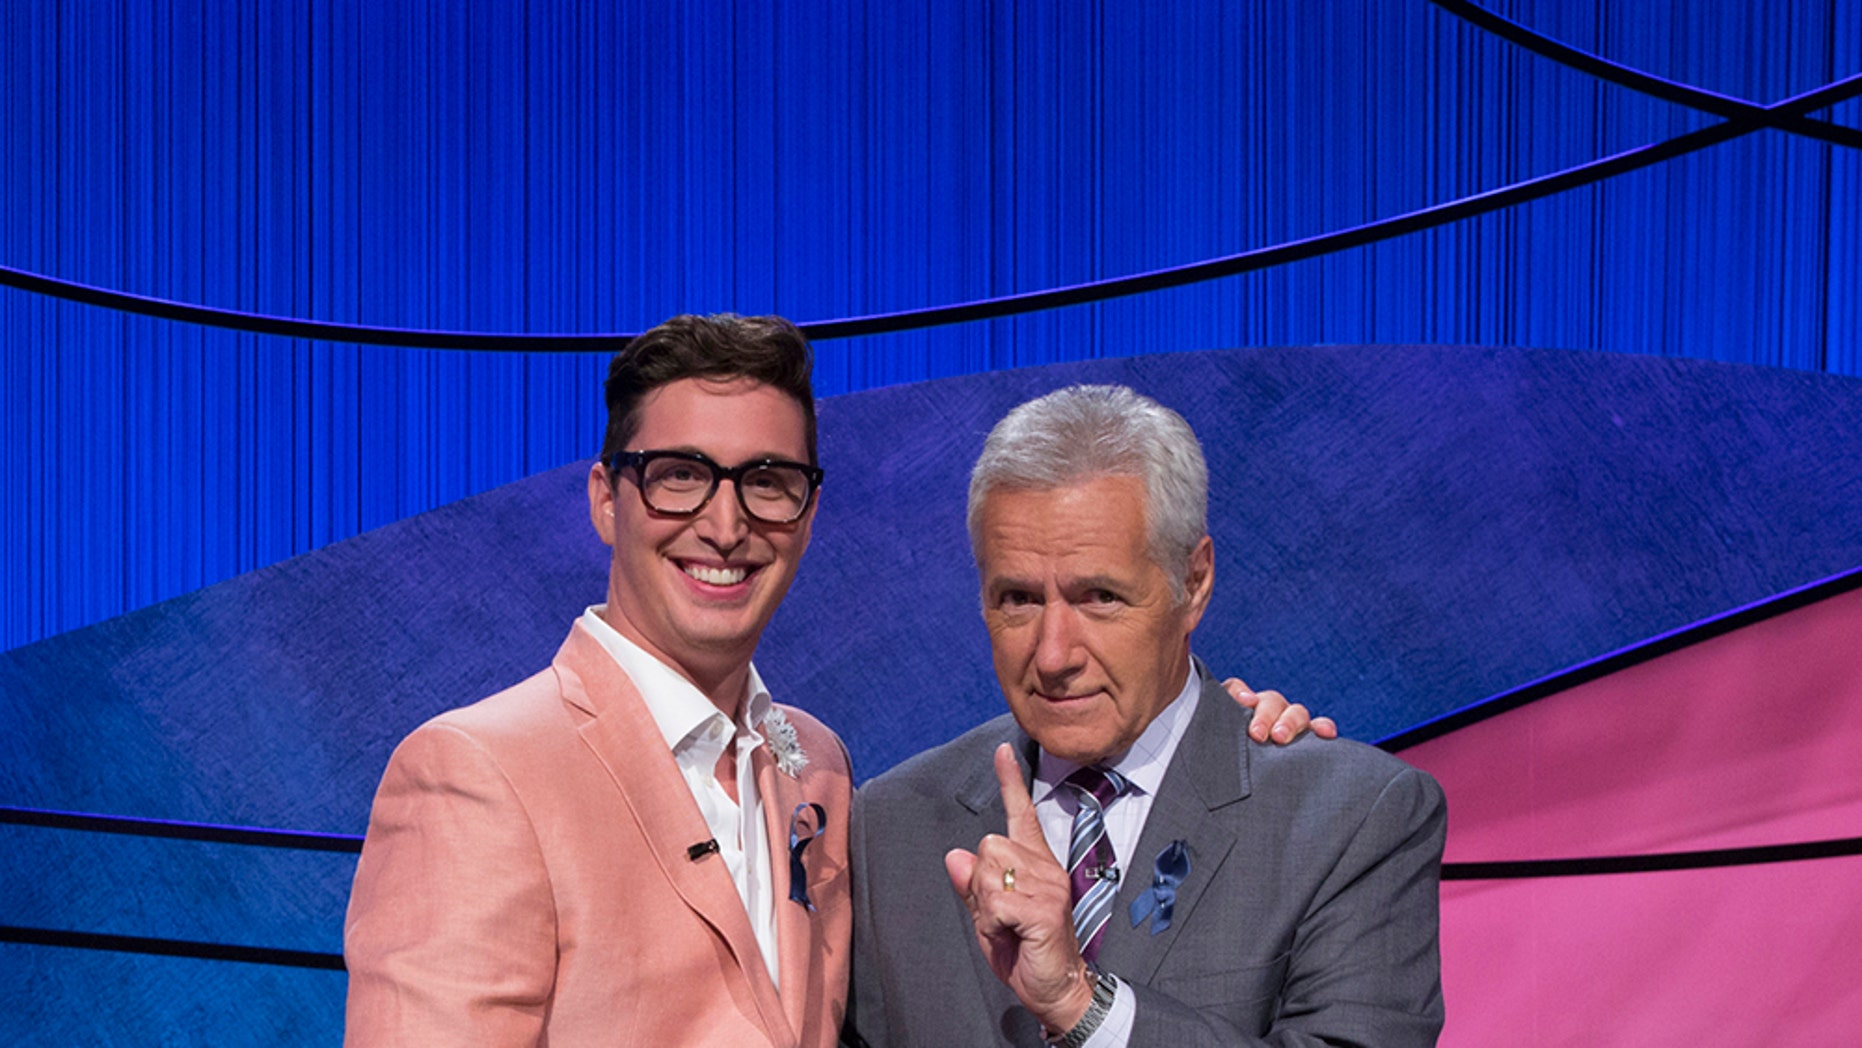 Tournament of champions jeopardy prizes for kids